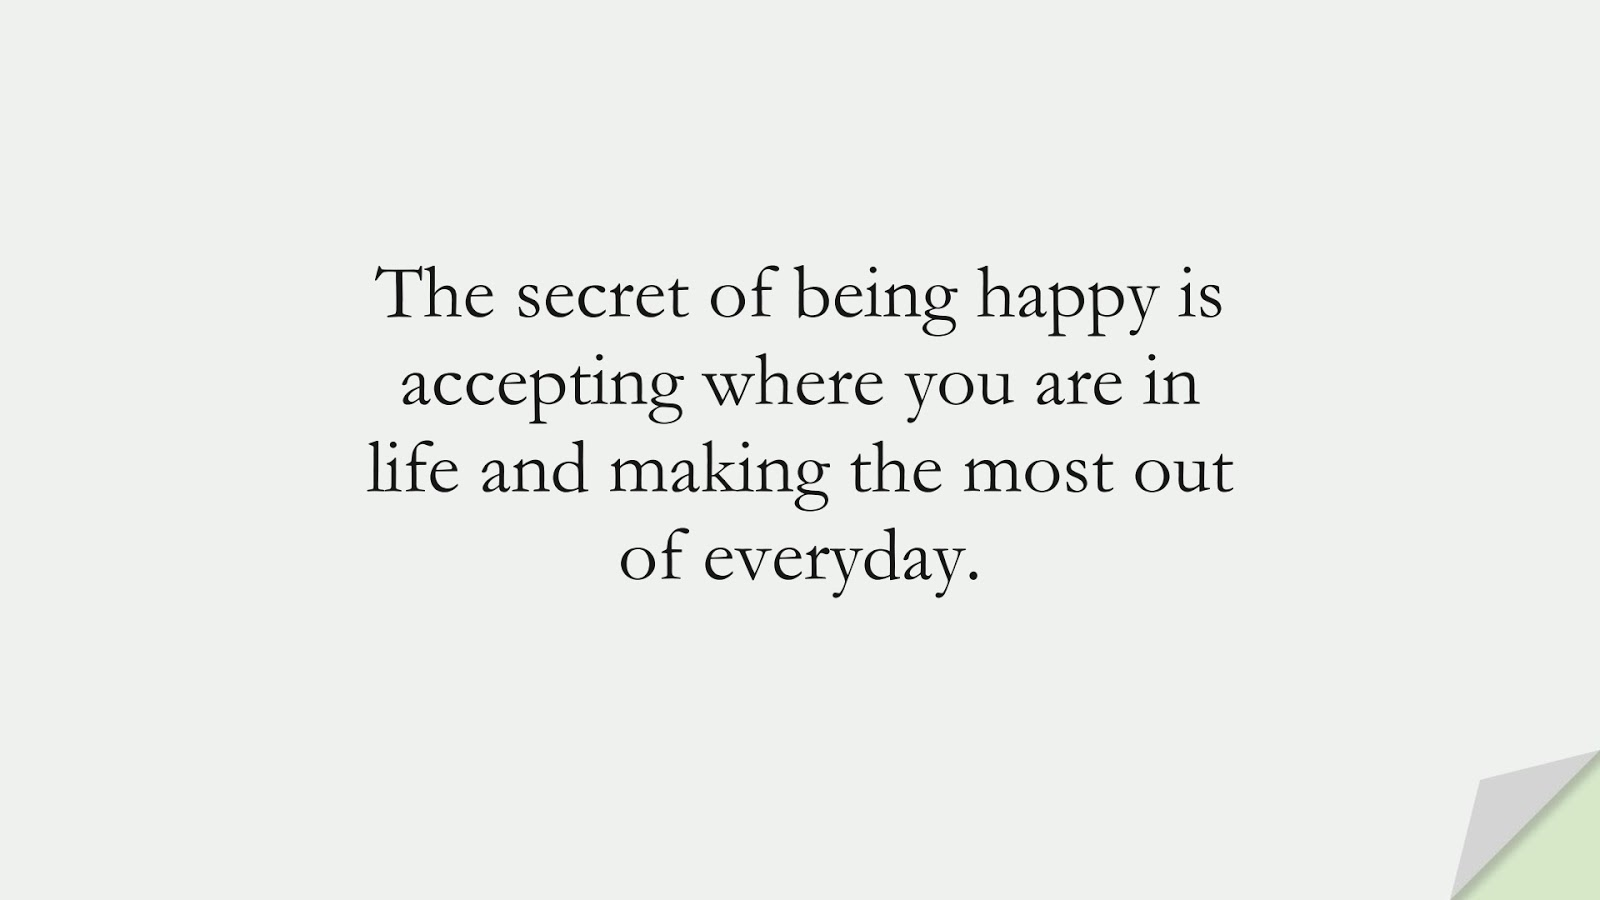 The secret of being happy is accepting where you are in life and making the most out of everyday.FALSE